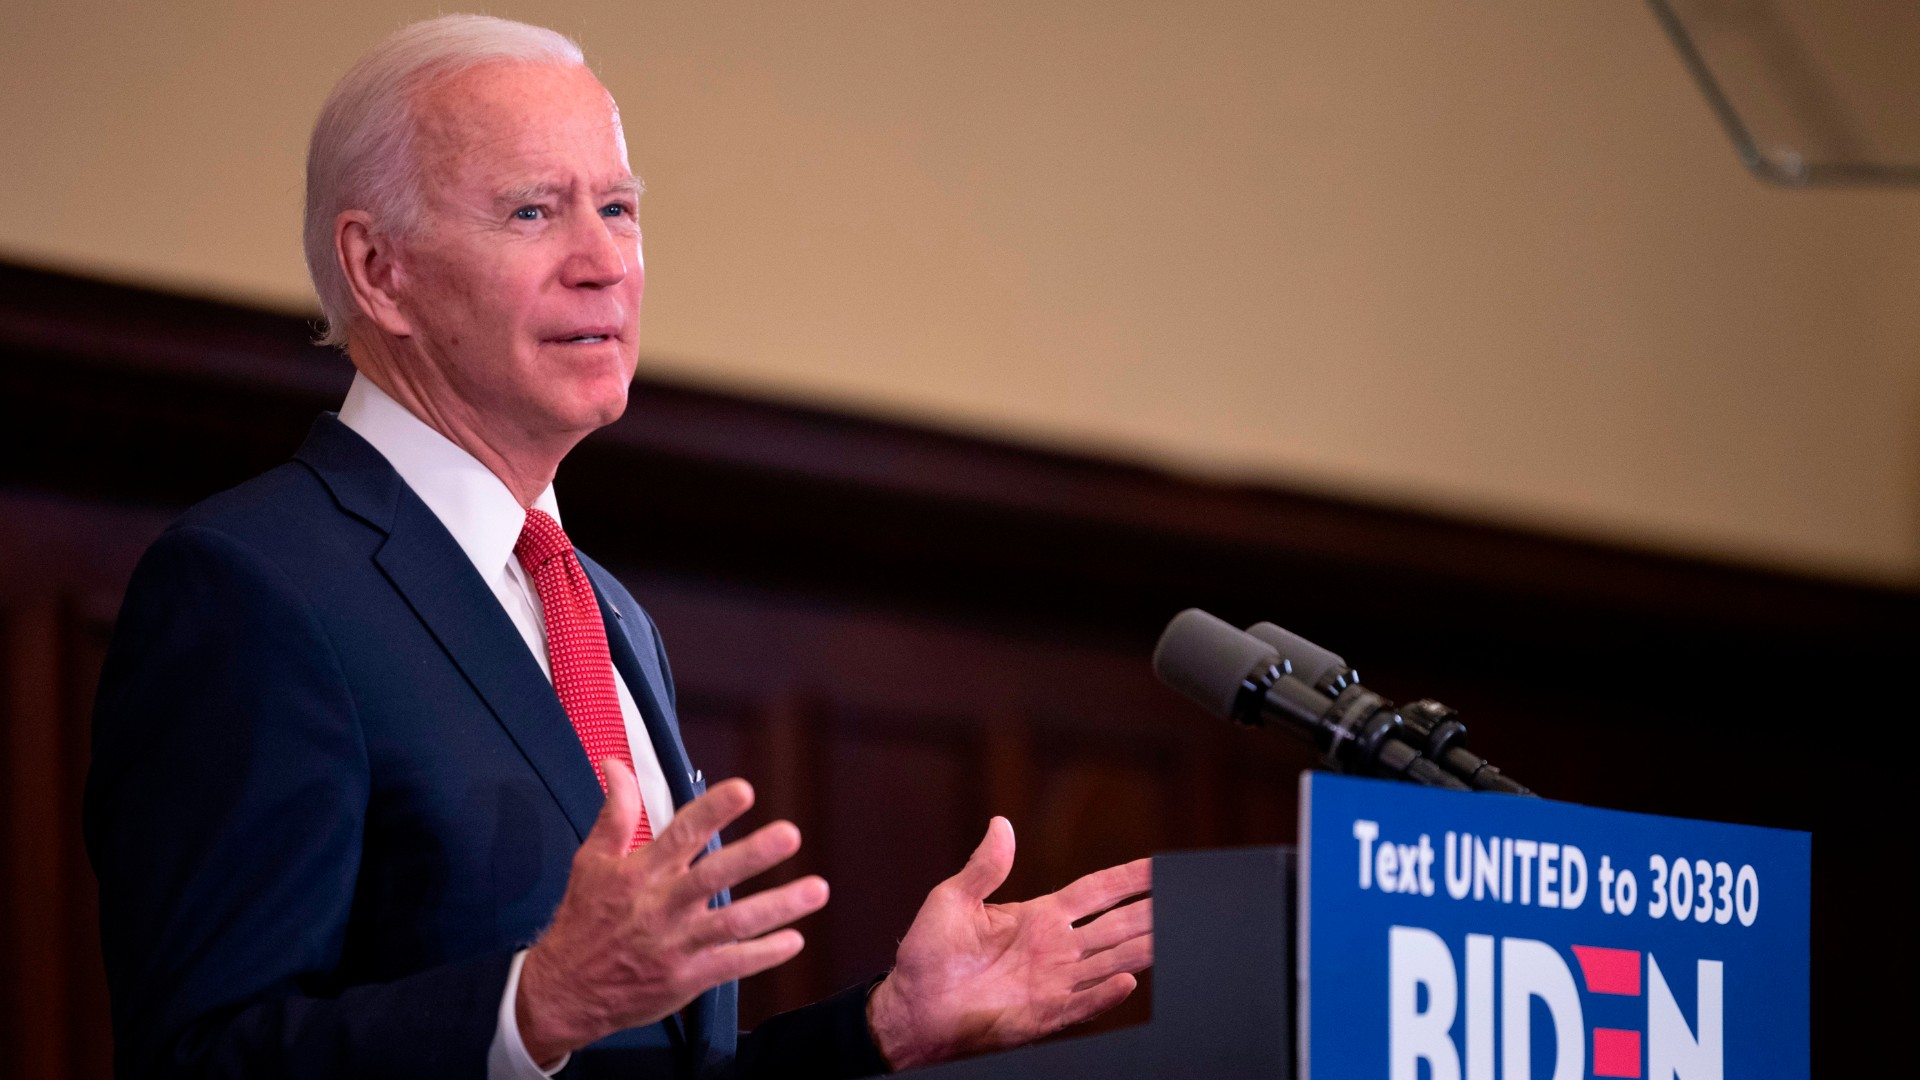 Former vice president and Democratic presidential candidate Joe Biden speaks about the unrest across the country from Philadelphia City Hall on June 2, 2020, in Philadelphia, Pennsylvania. (Jim Watson/AFP/Getty Images)